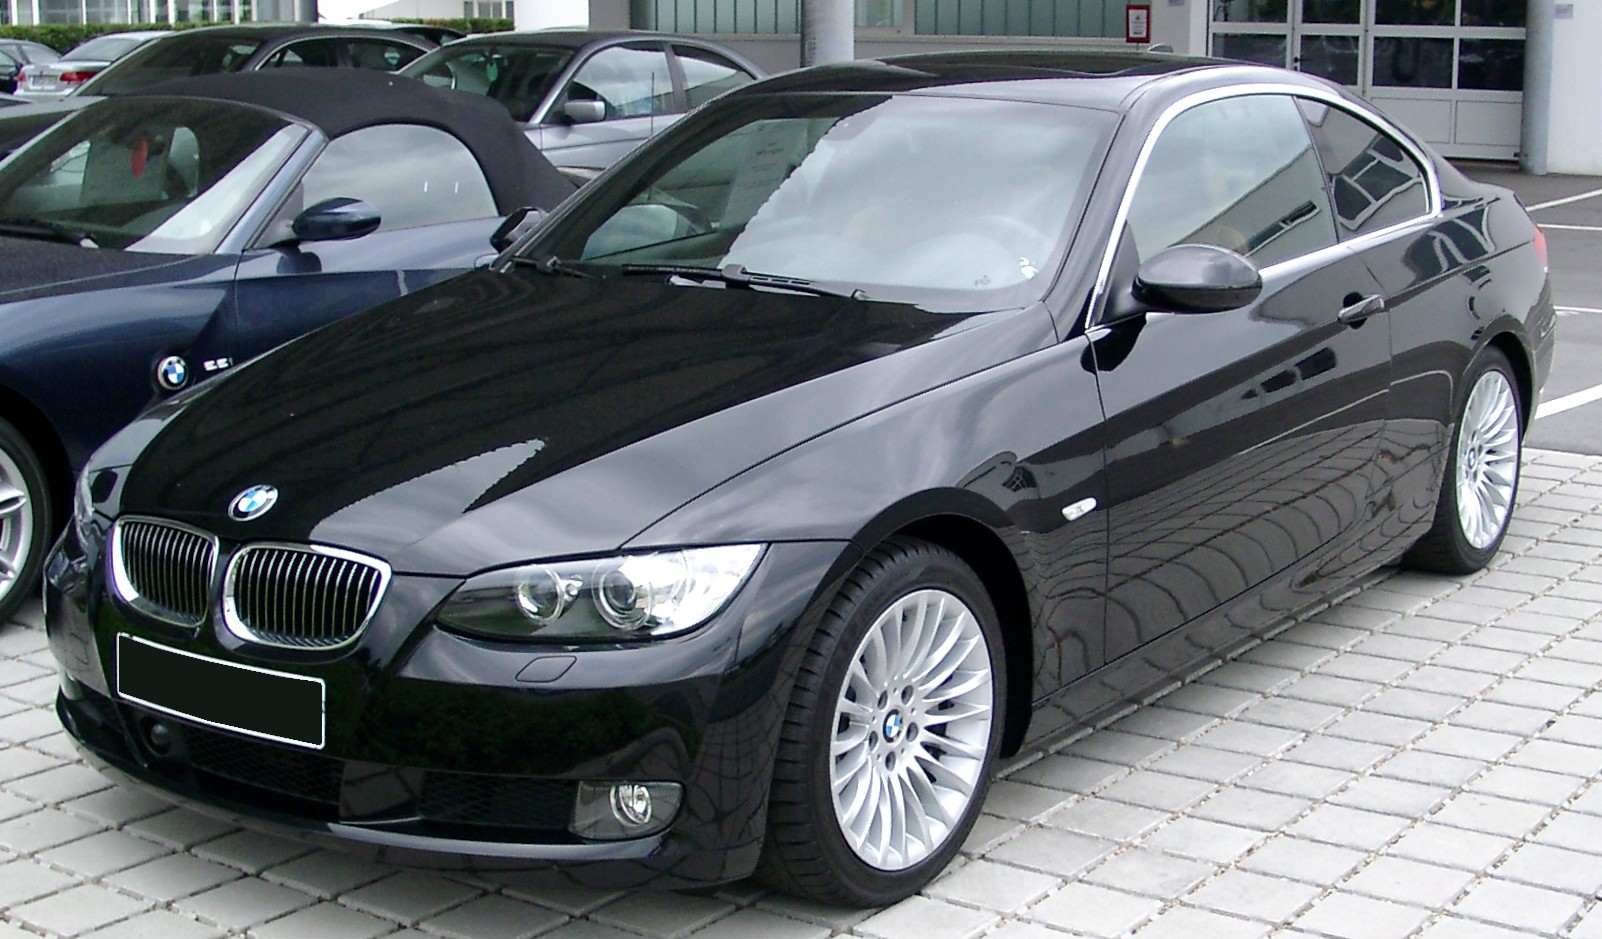 BMW_E90_Coupe_front_20080524 (1)